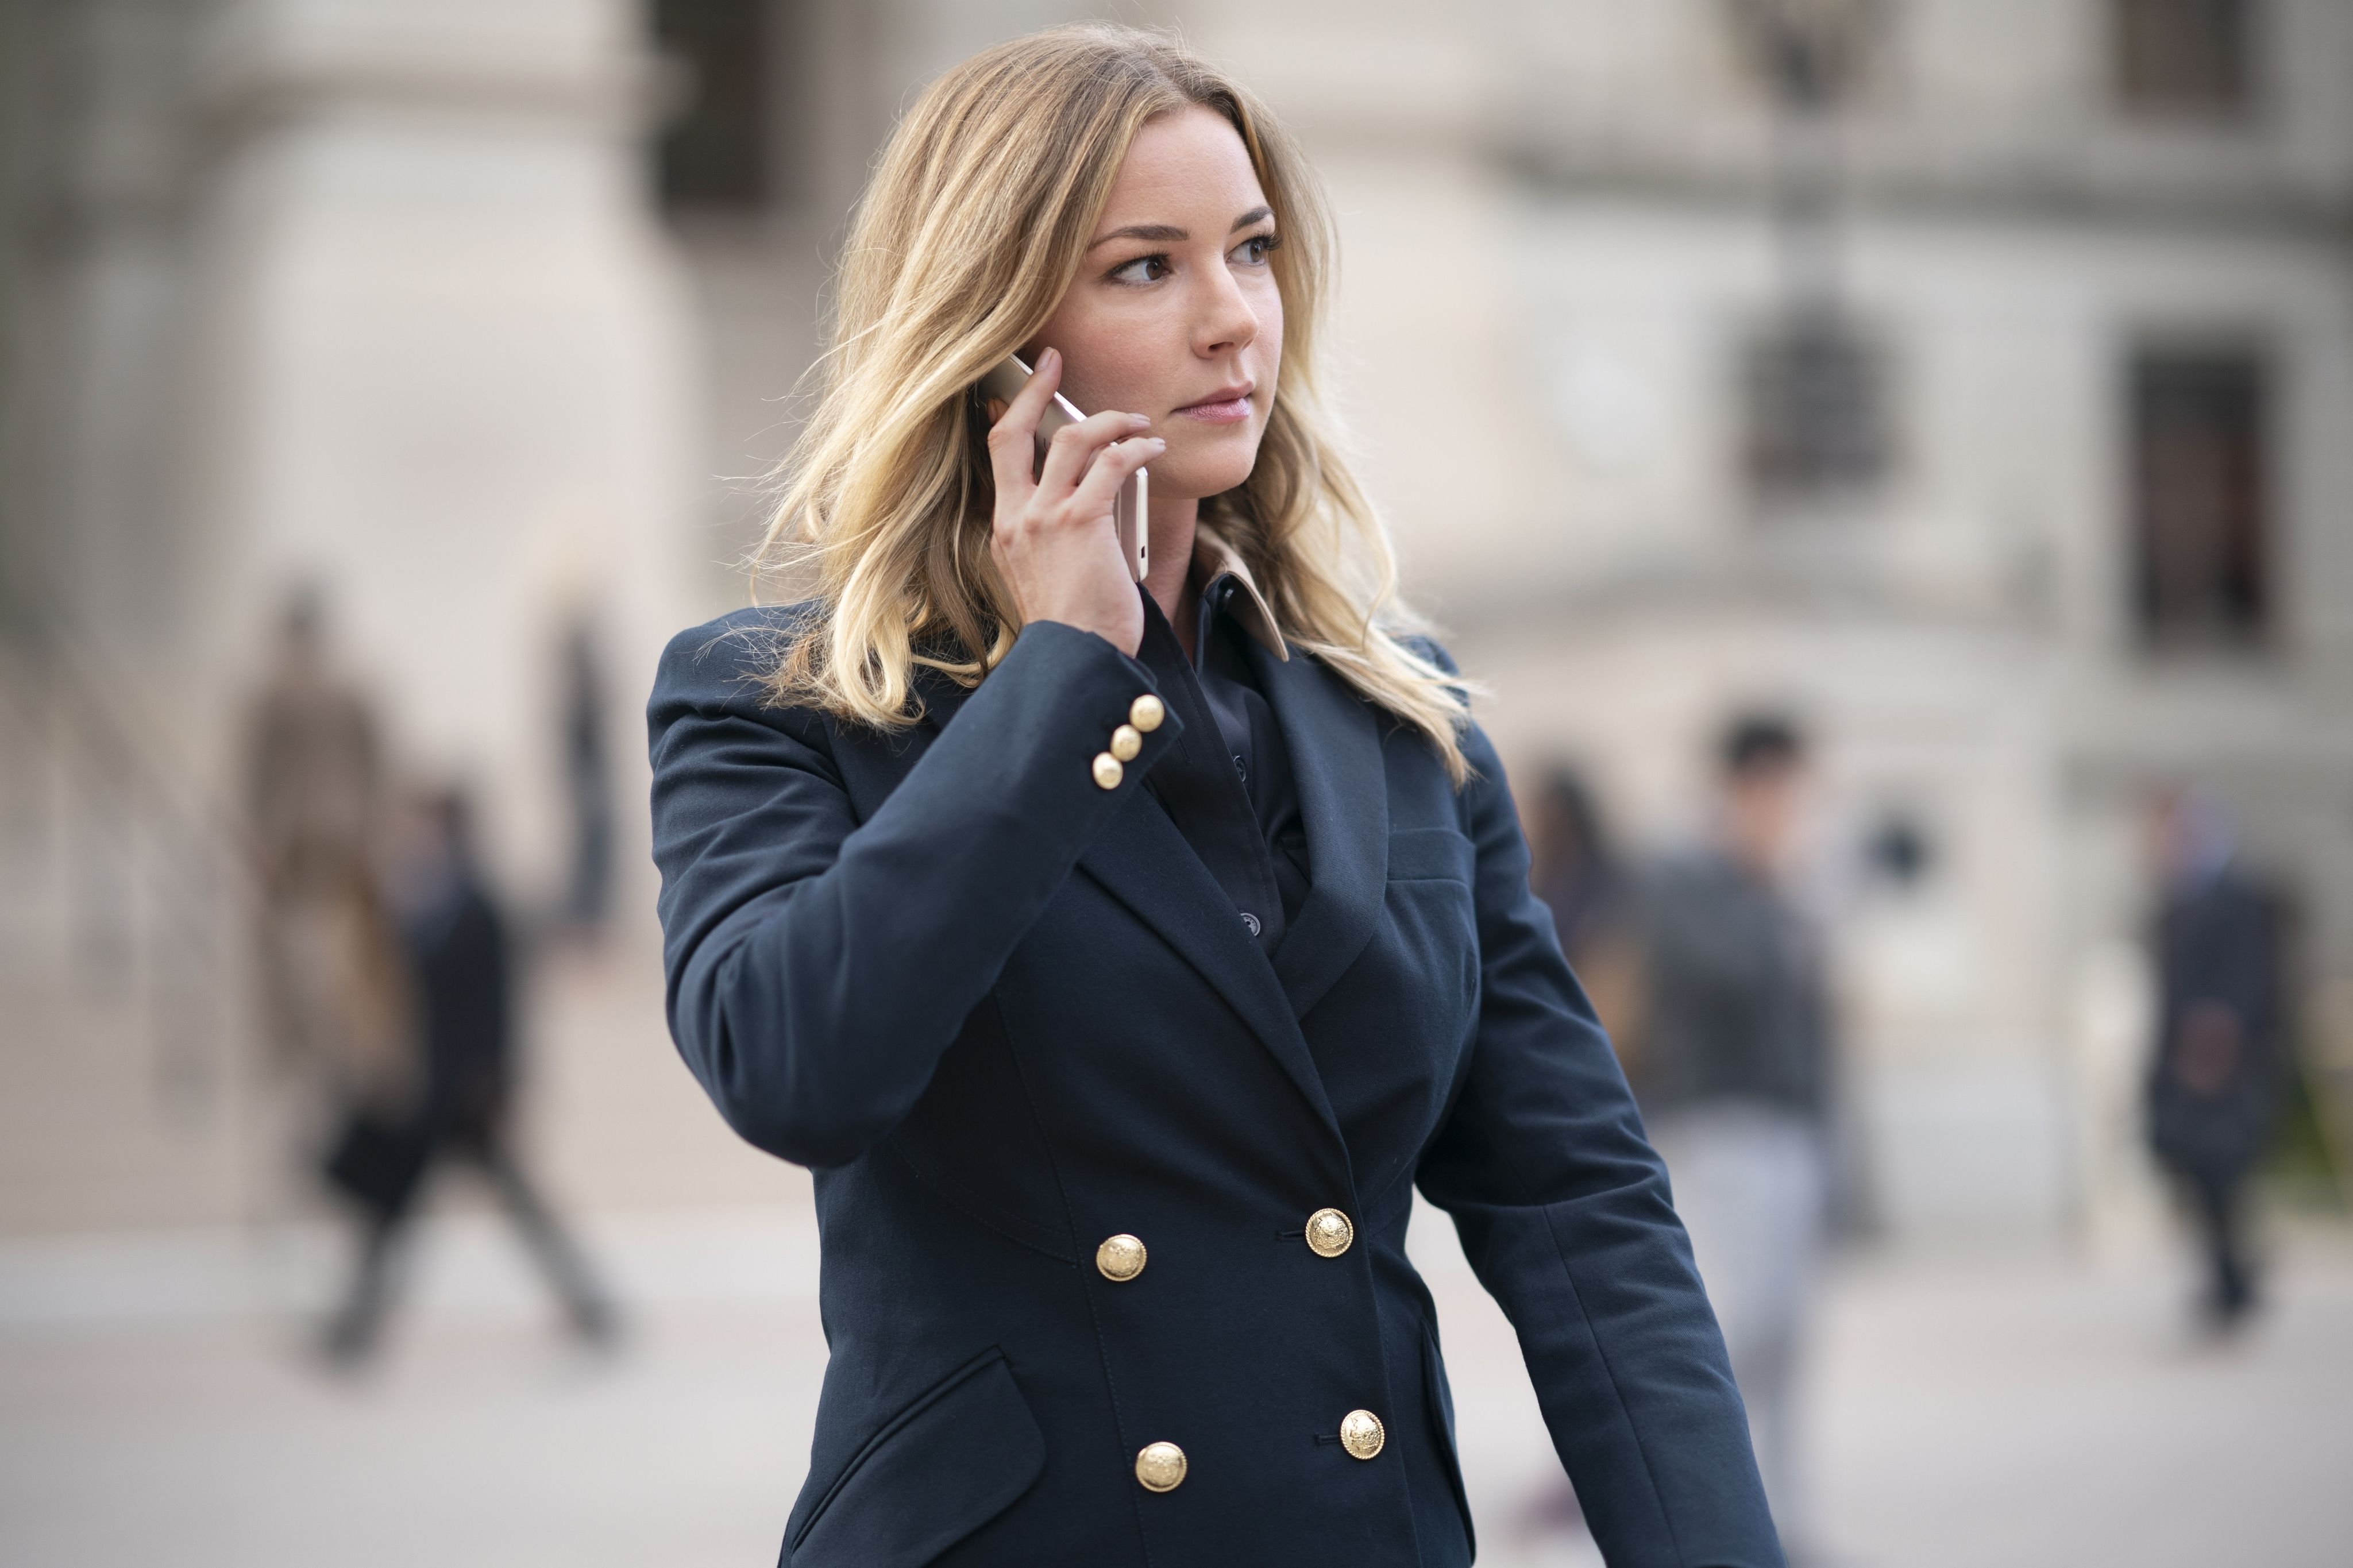 Emily VanCamp in Falcon and the Winter Soldier